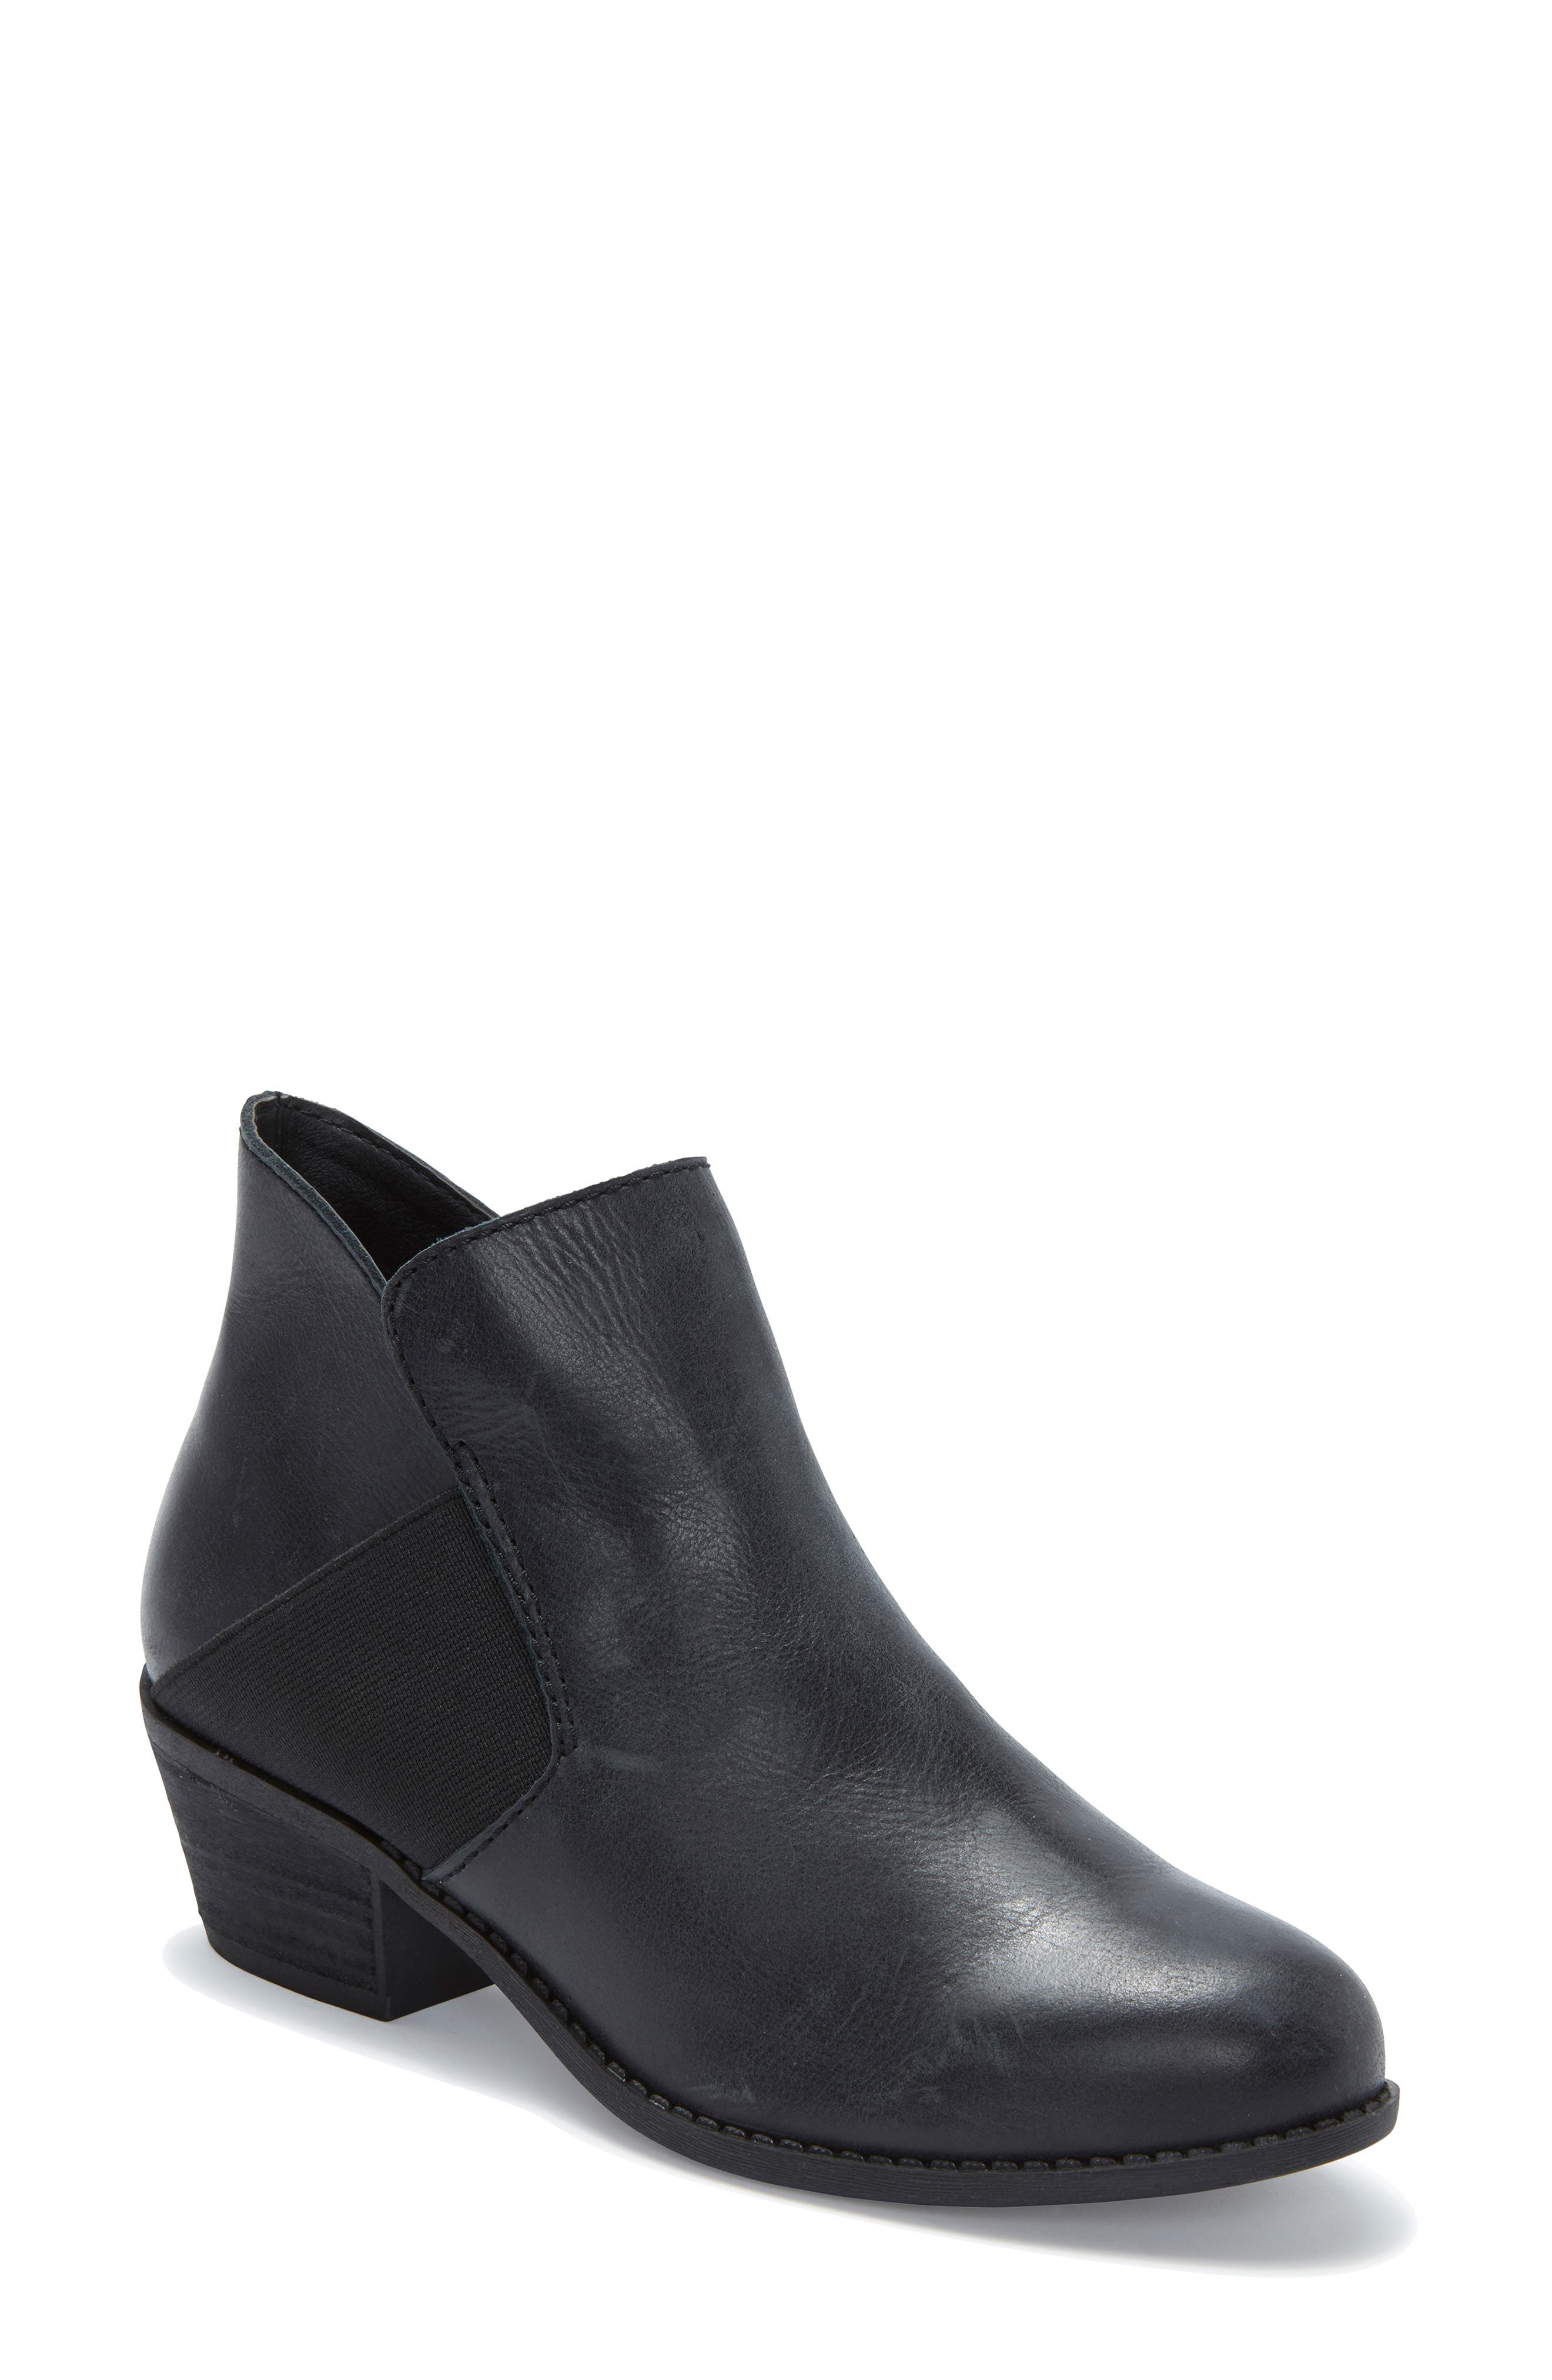 ME TOO, Zada Bootie, Main thumbnail 1, color, 010